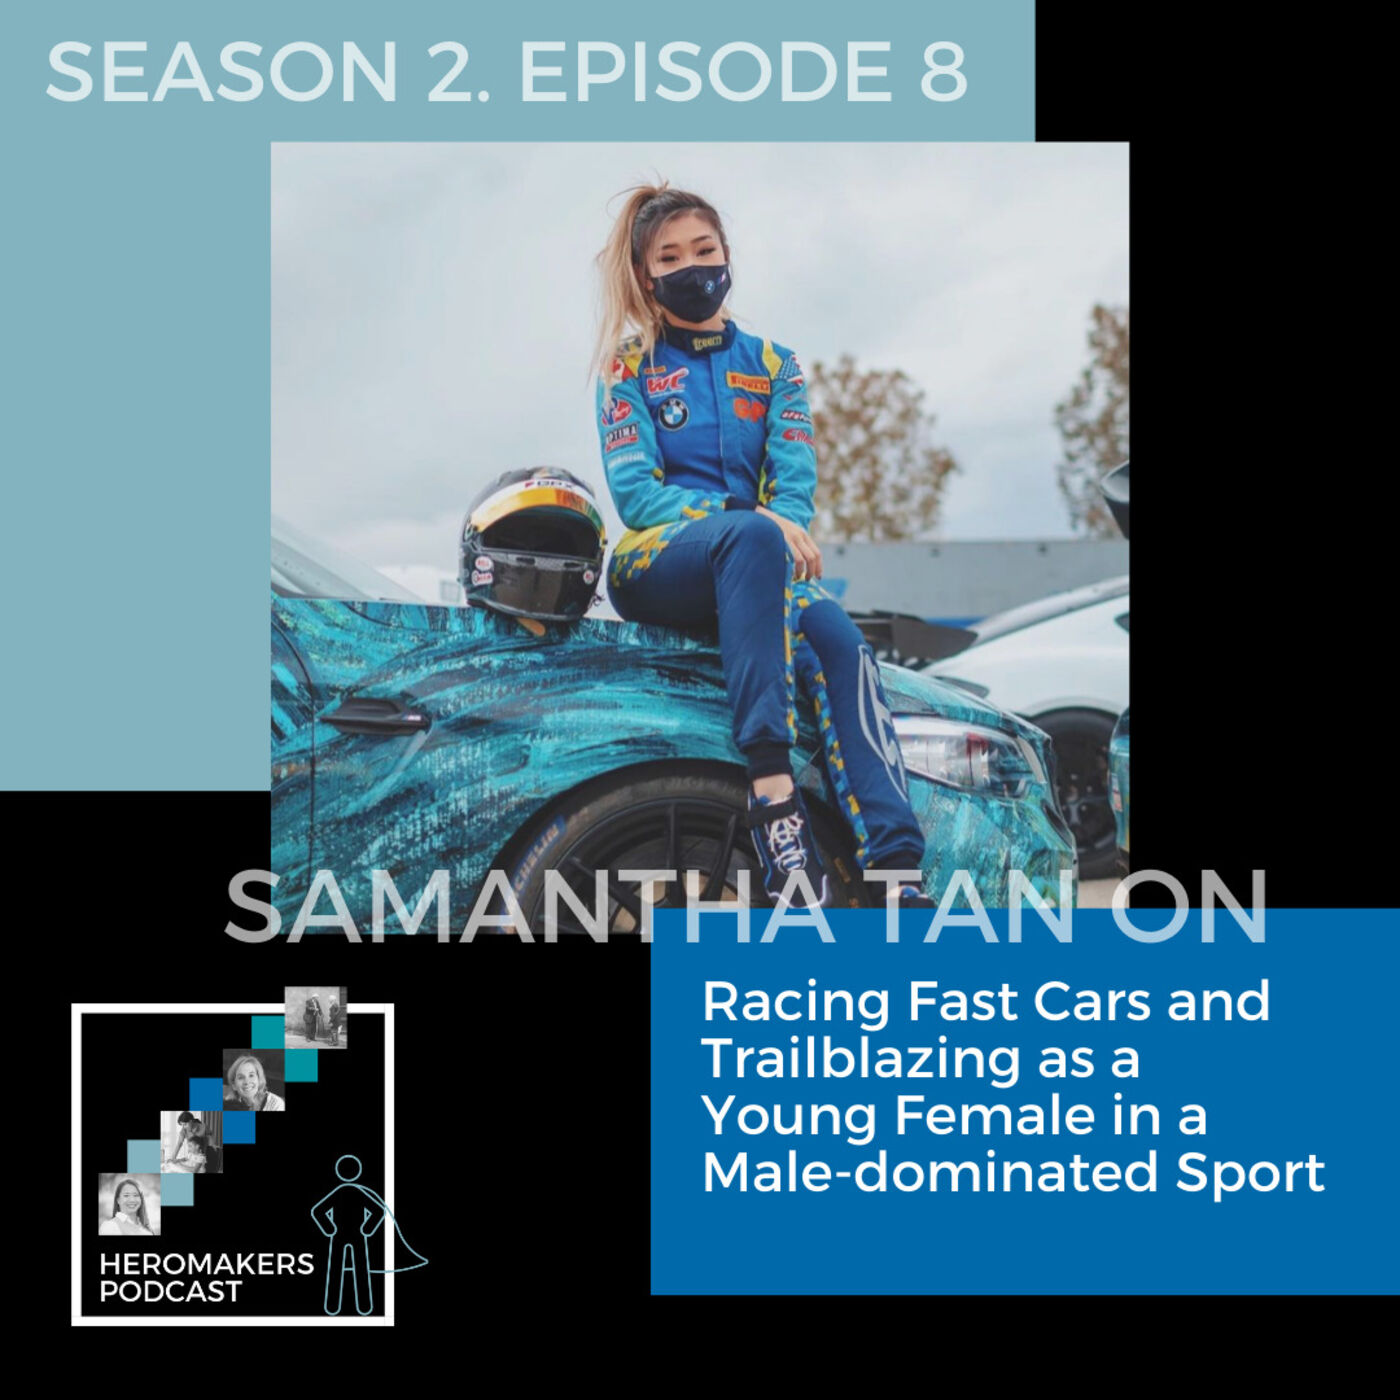 Samantha Tan on Racing Fast Cars and Trailblazing as a Young Female in a Male-dominated Sport